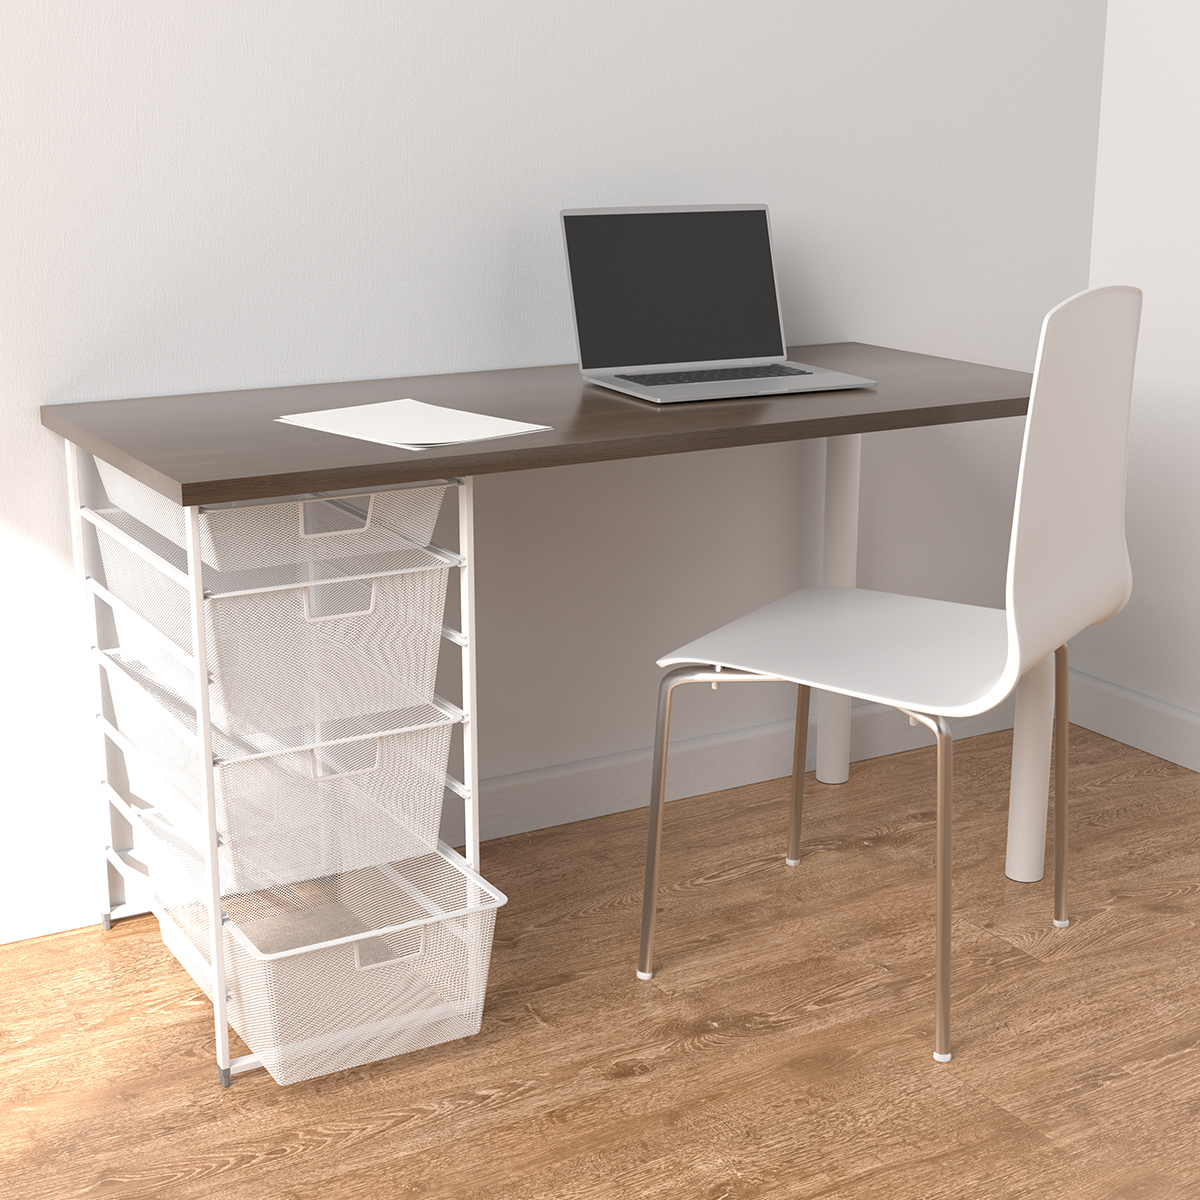 Elfa White & Driftwood Desk with Drawer